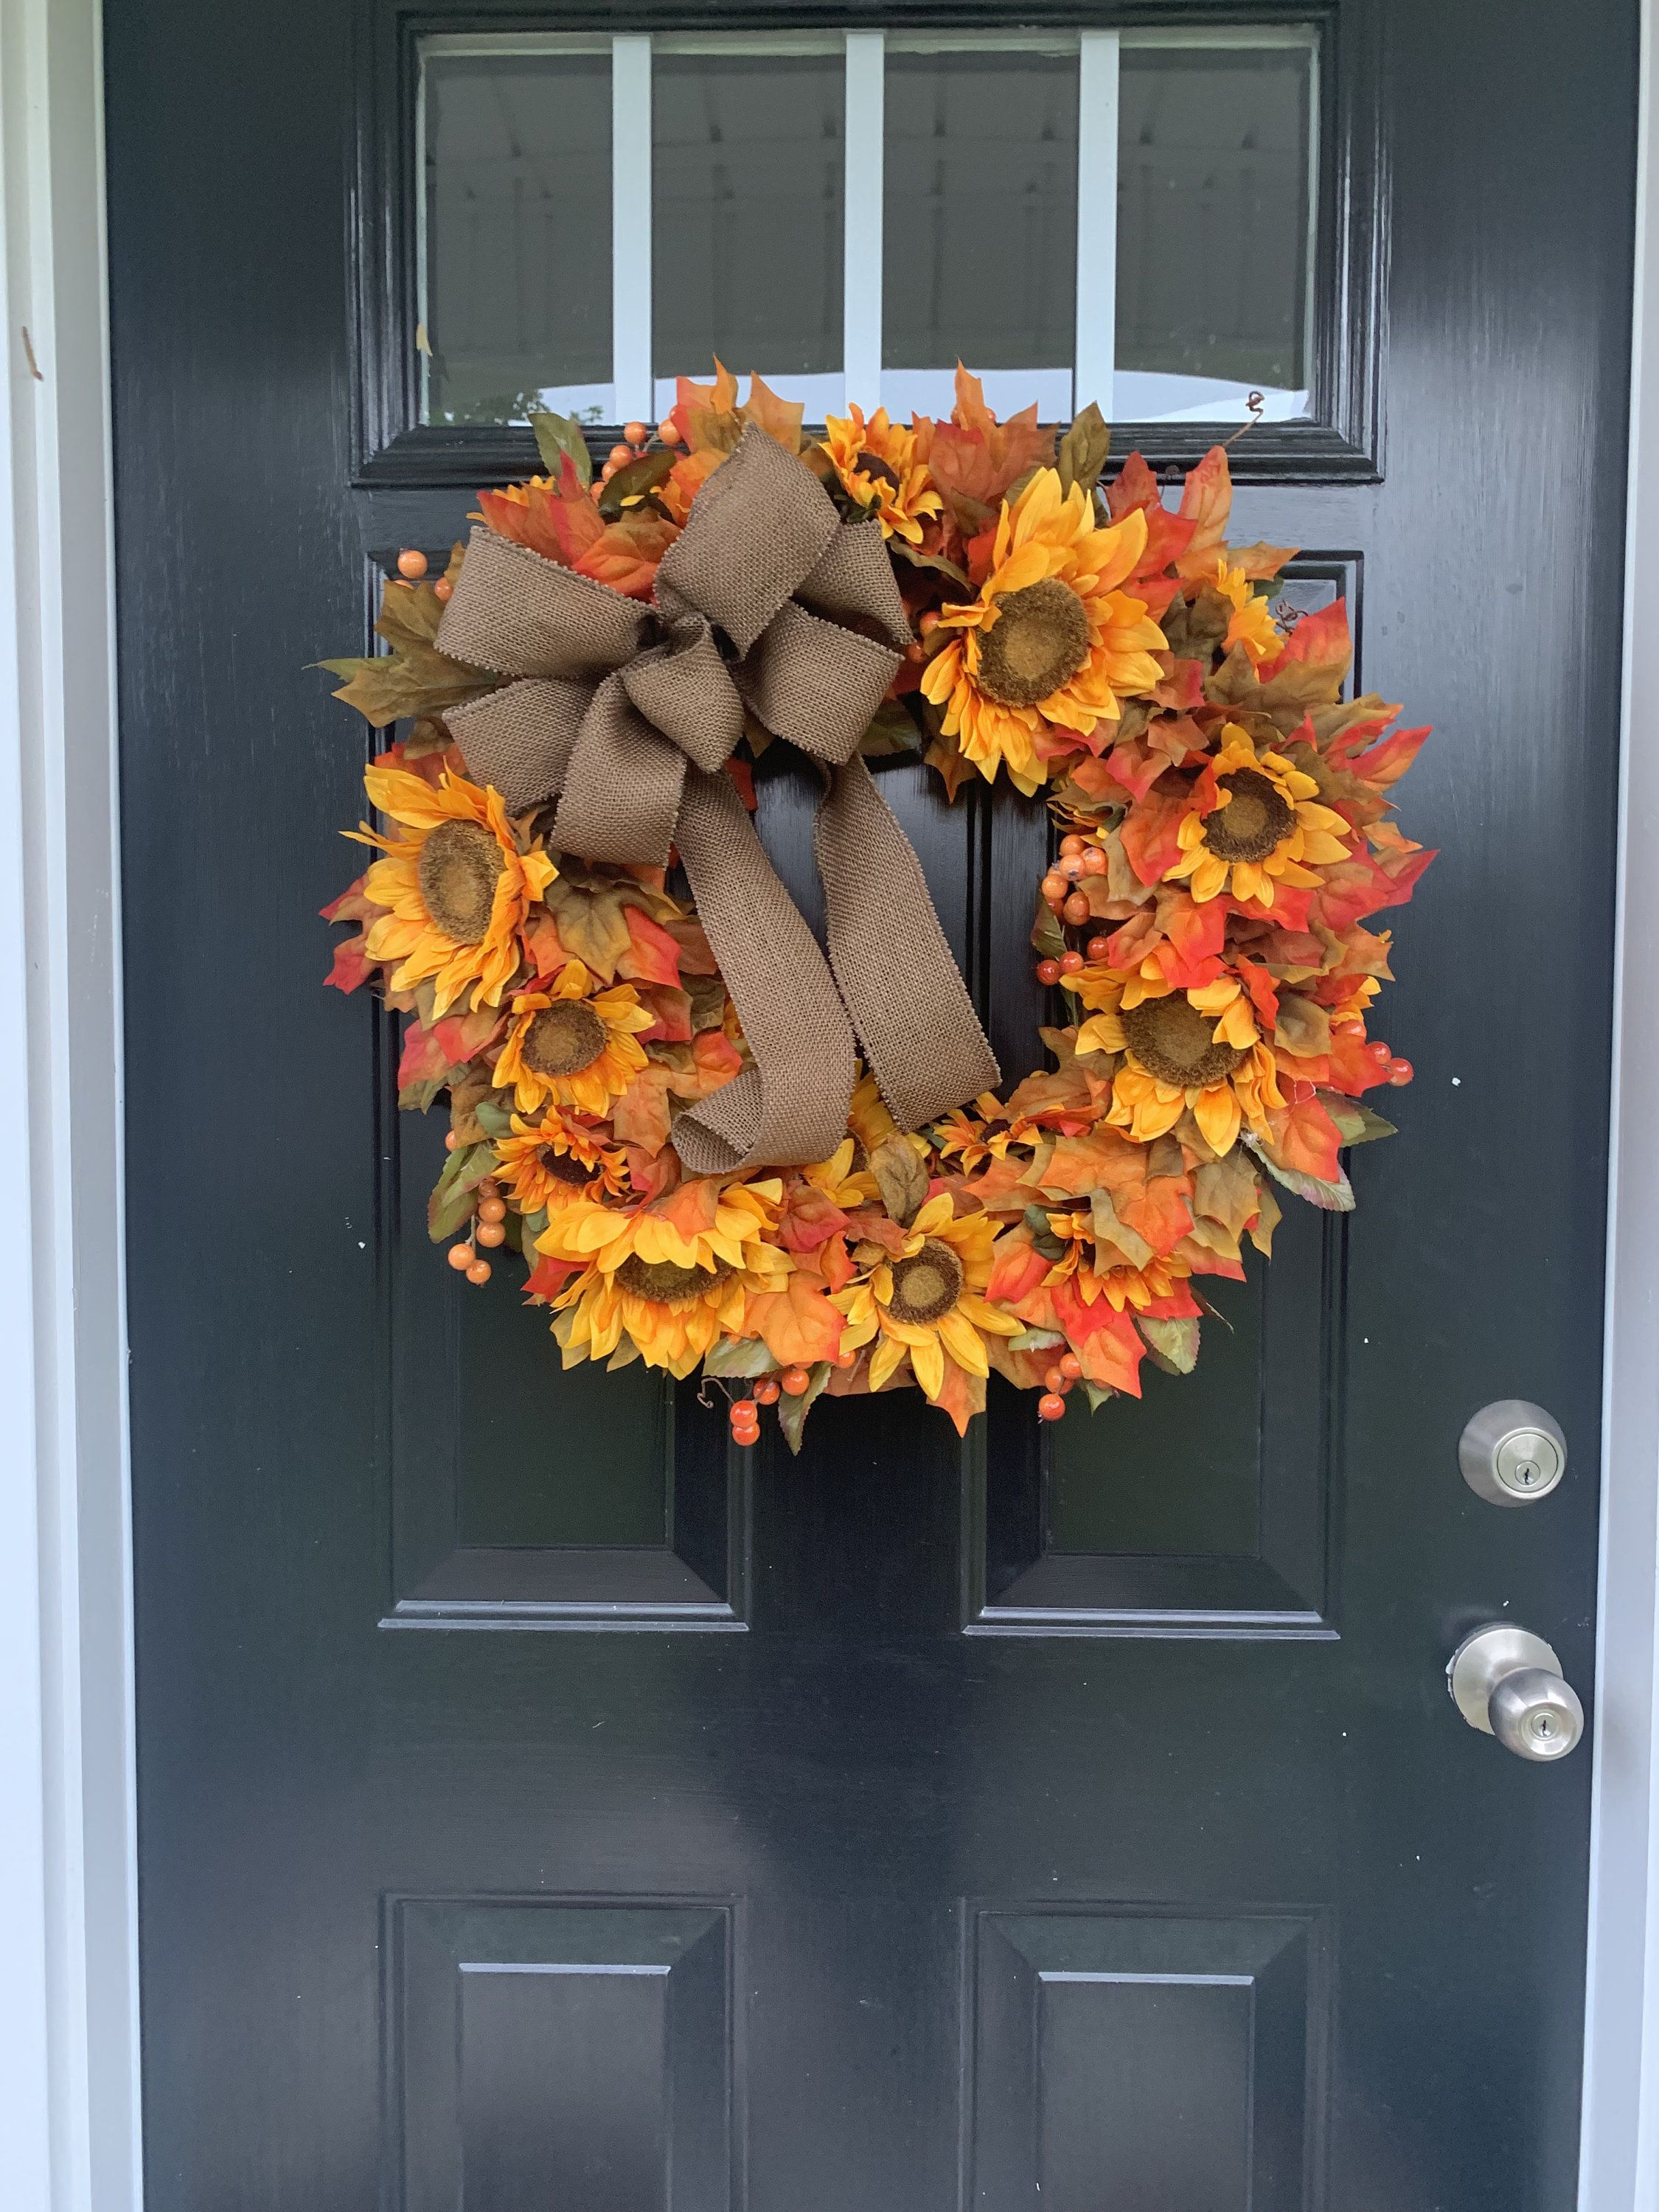 Fall wreath for front door, Fall Decor, Home Decor, Sunflower Wreath, Doorhanger, Door Decor, Housewarming Gift, Thanksgiving Wreath images